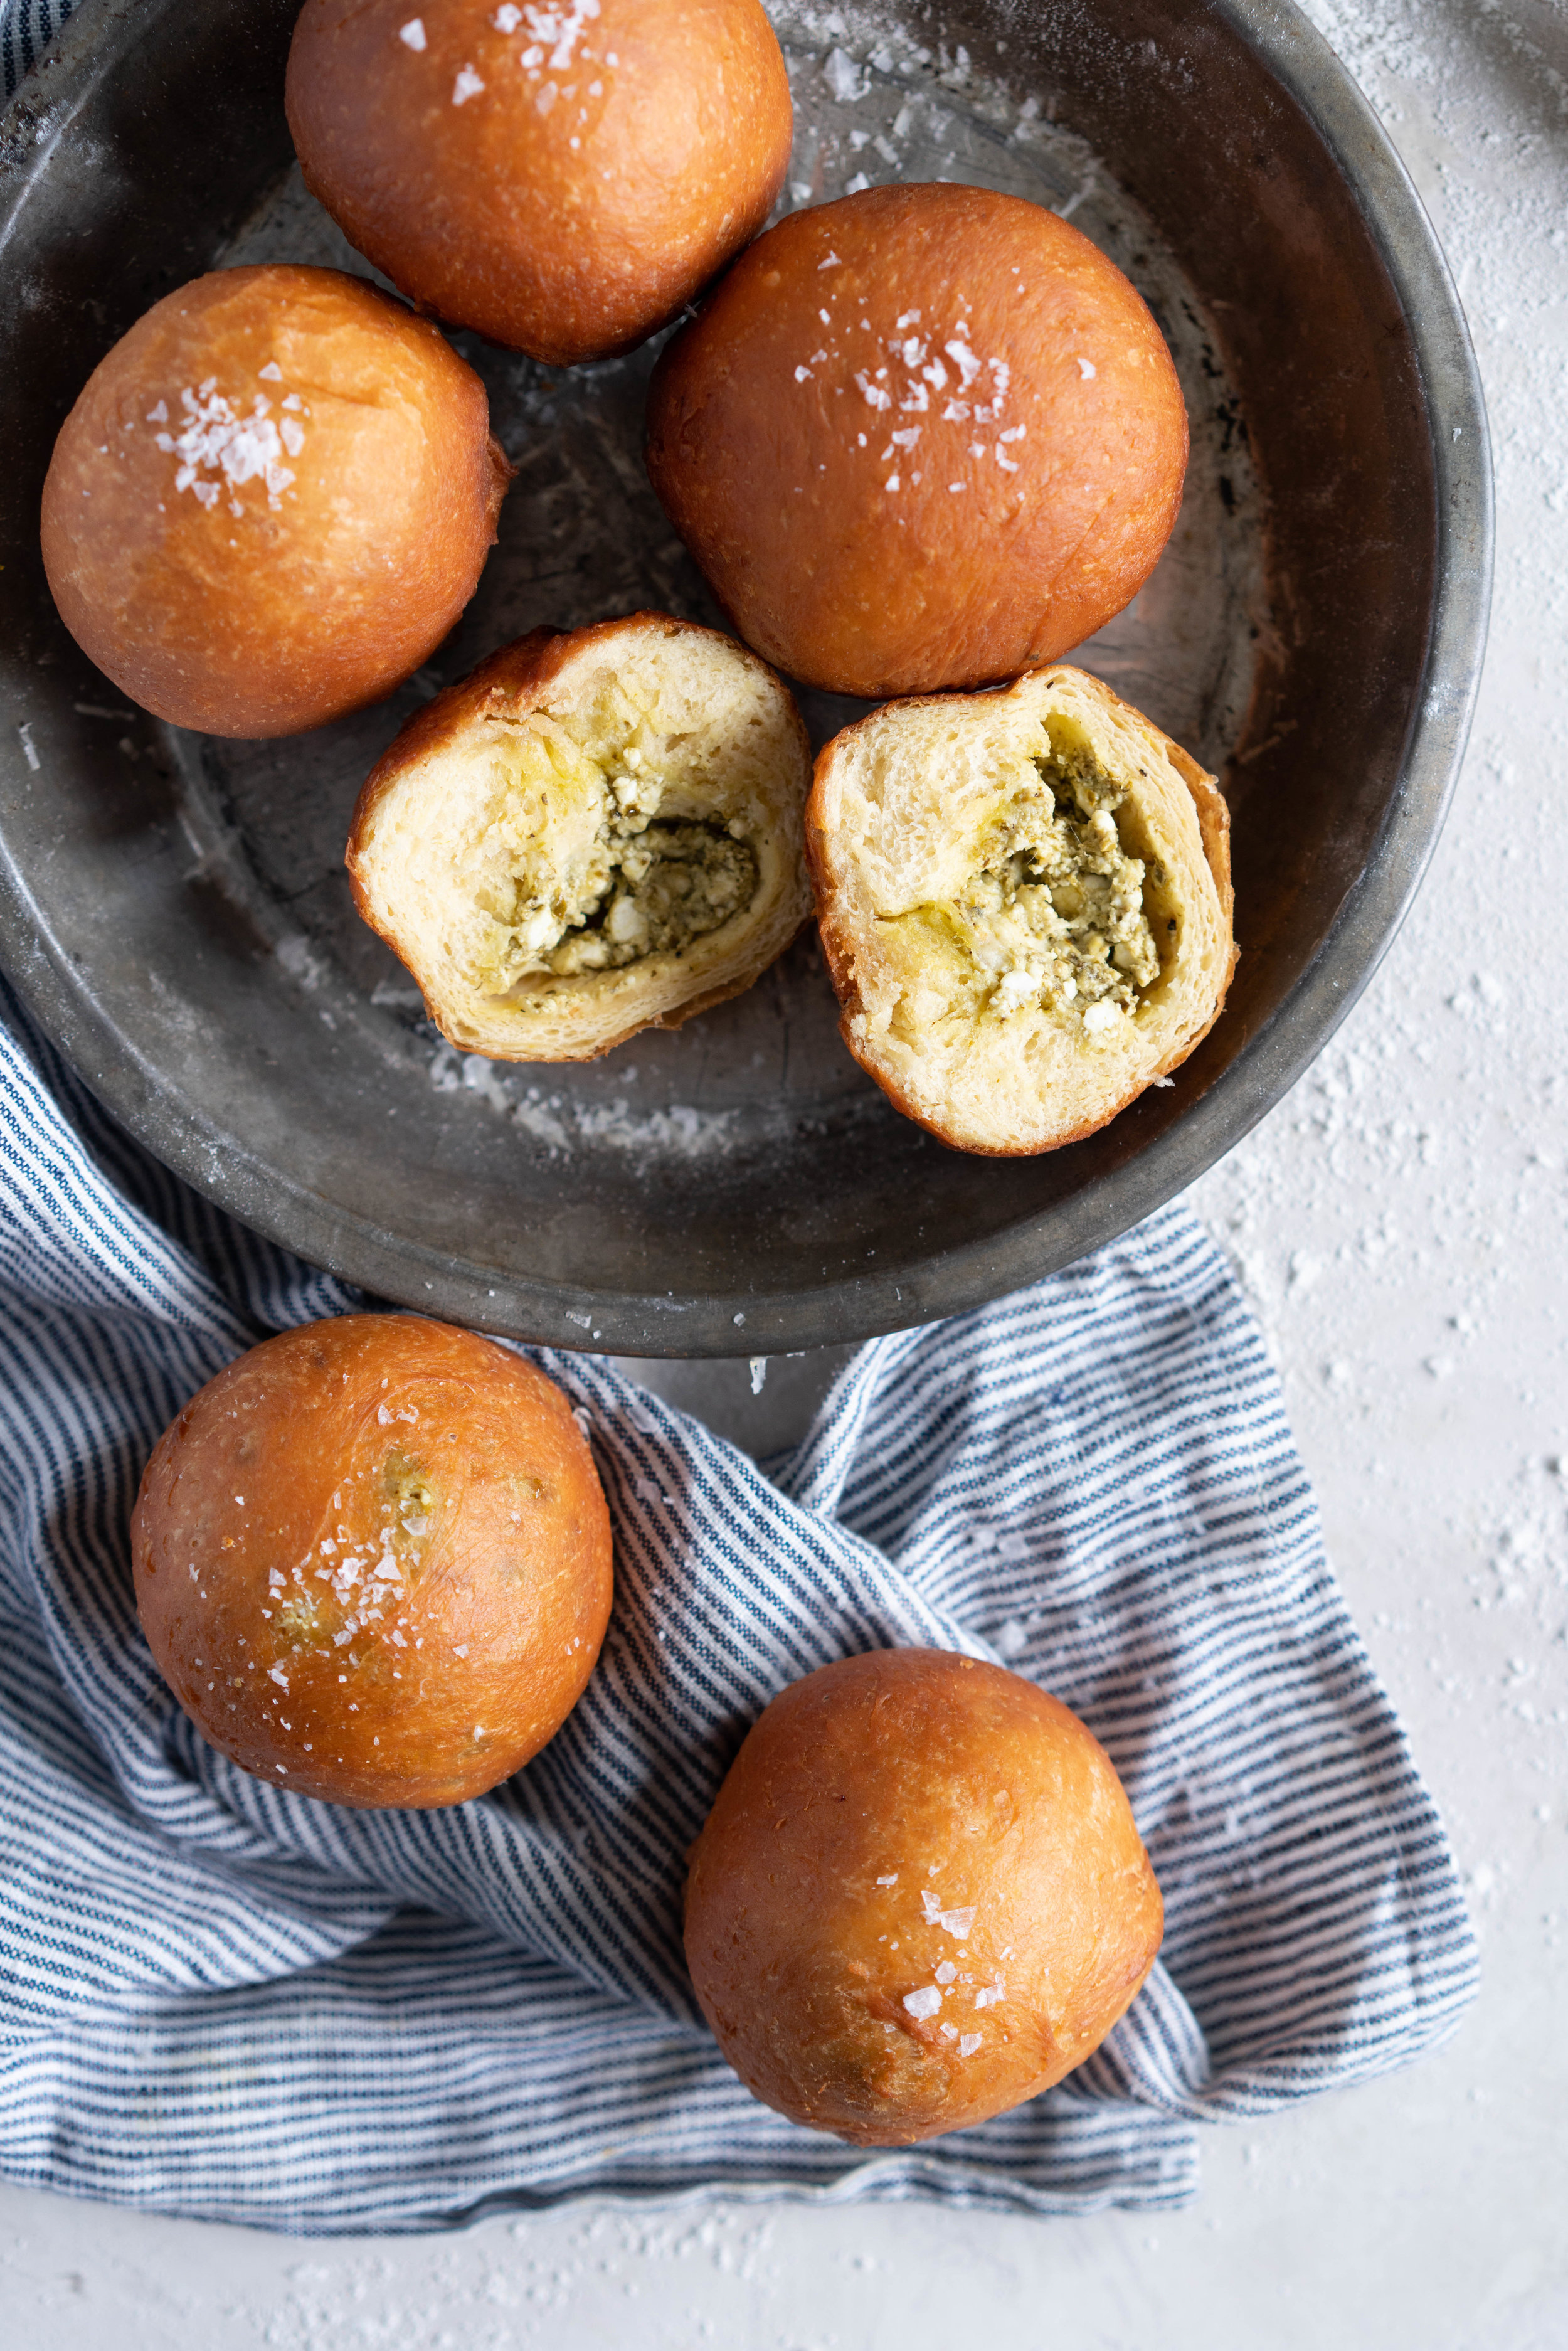 Basil Pesto and Feta Stuffed Savoury Brioche Doughnuts - Brioche dough is wrapped around a basil pesto and feta filling, then fried to golden brown perfection #savoury #savory #briochedoughnut #pestoandfeta #donut #brioche